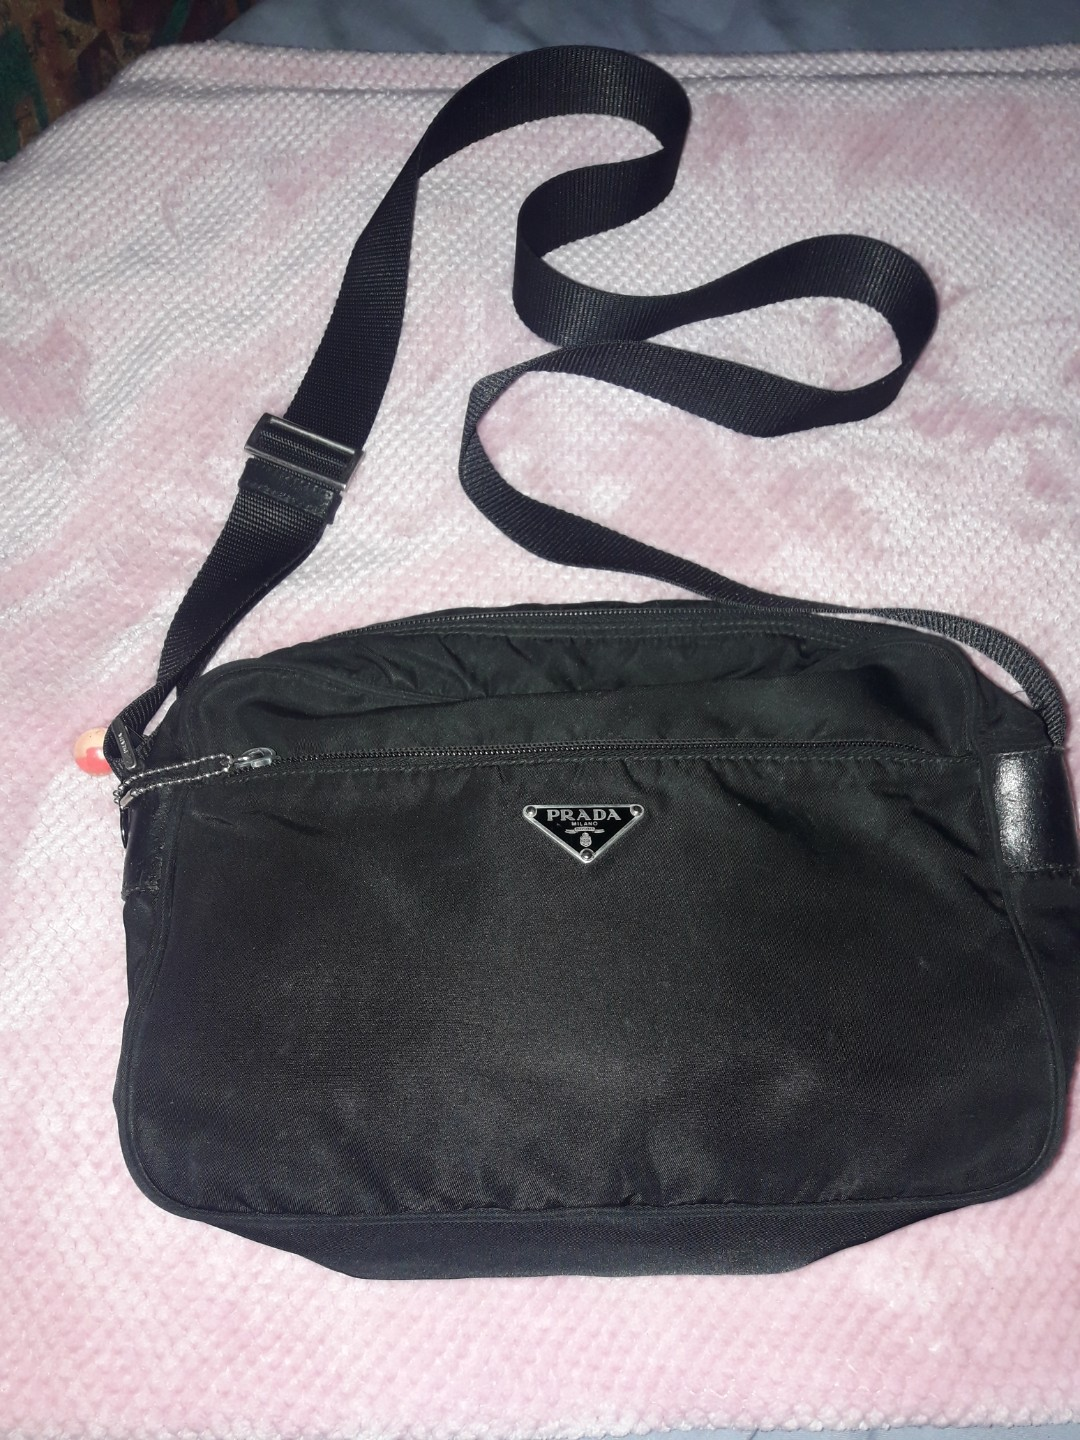 Authentic Prada sling bag 6dd51e8660c34